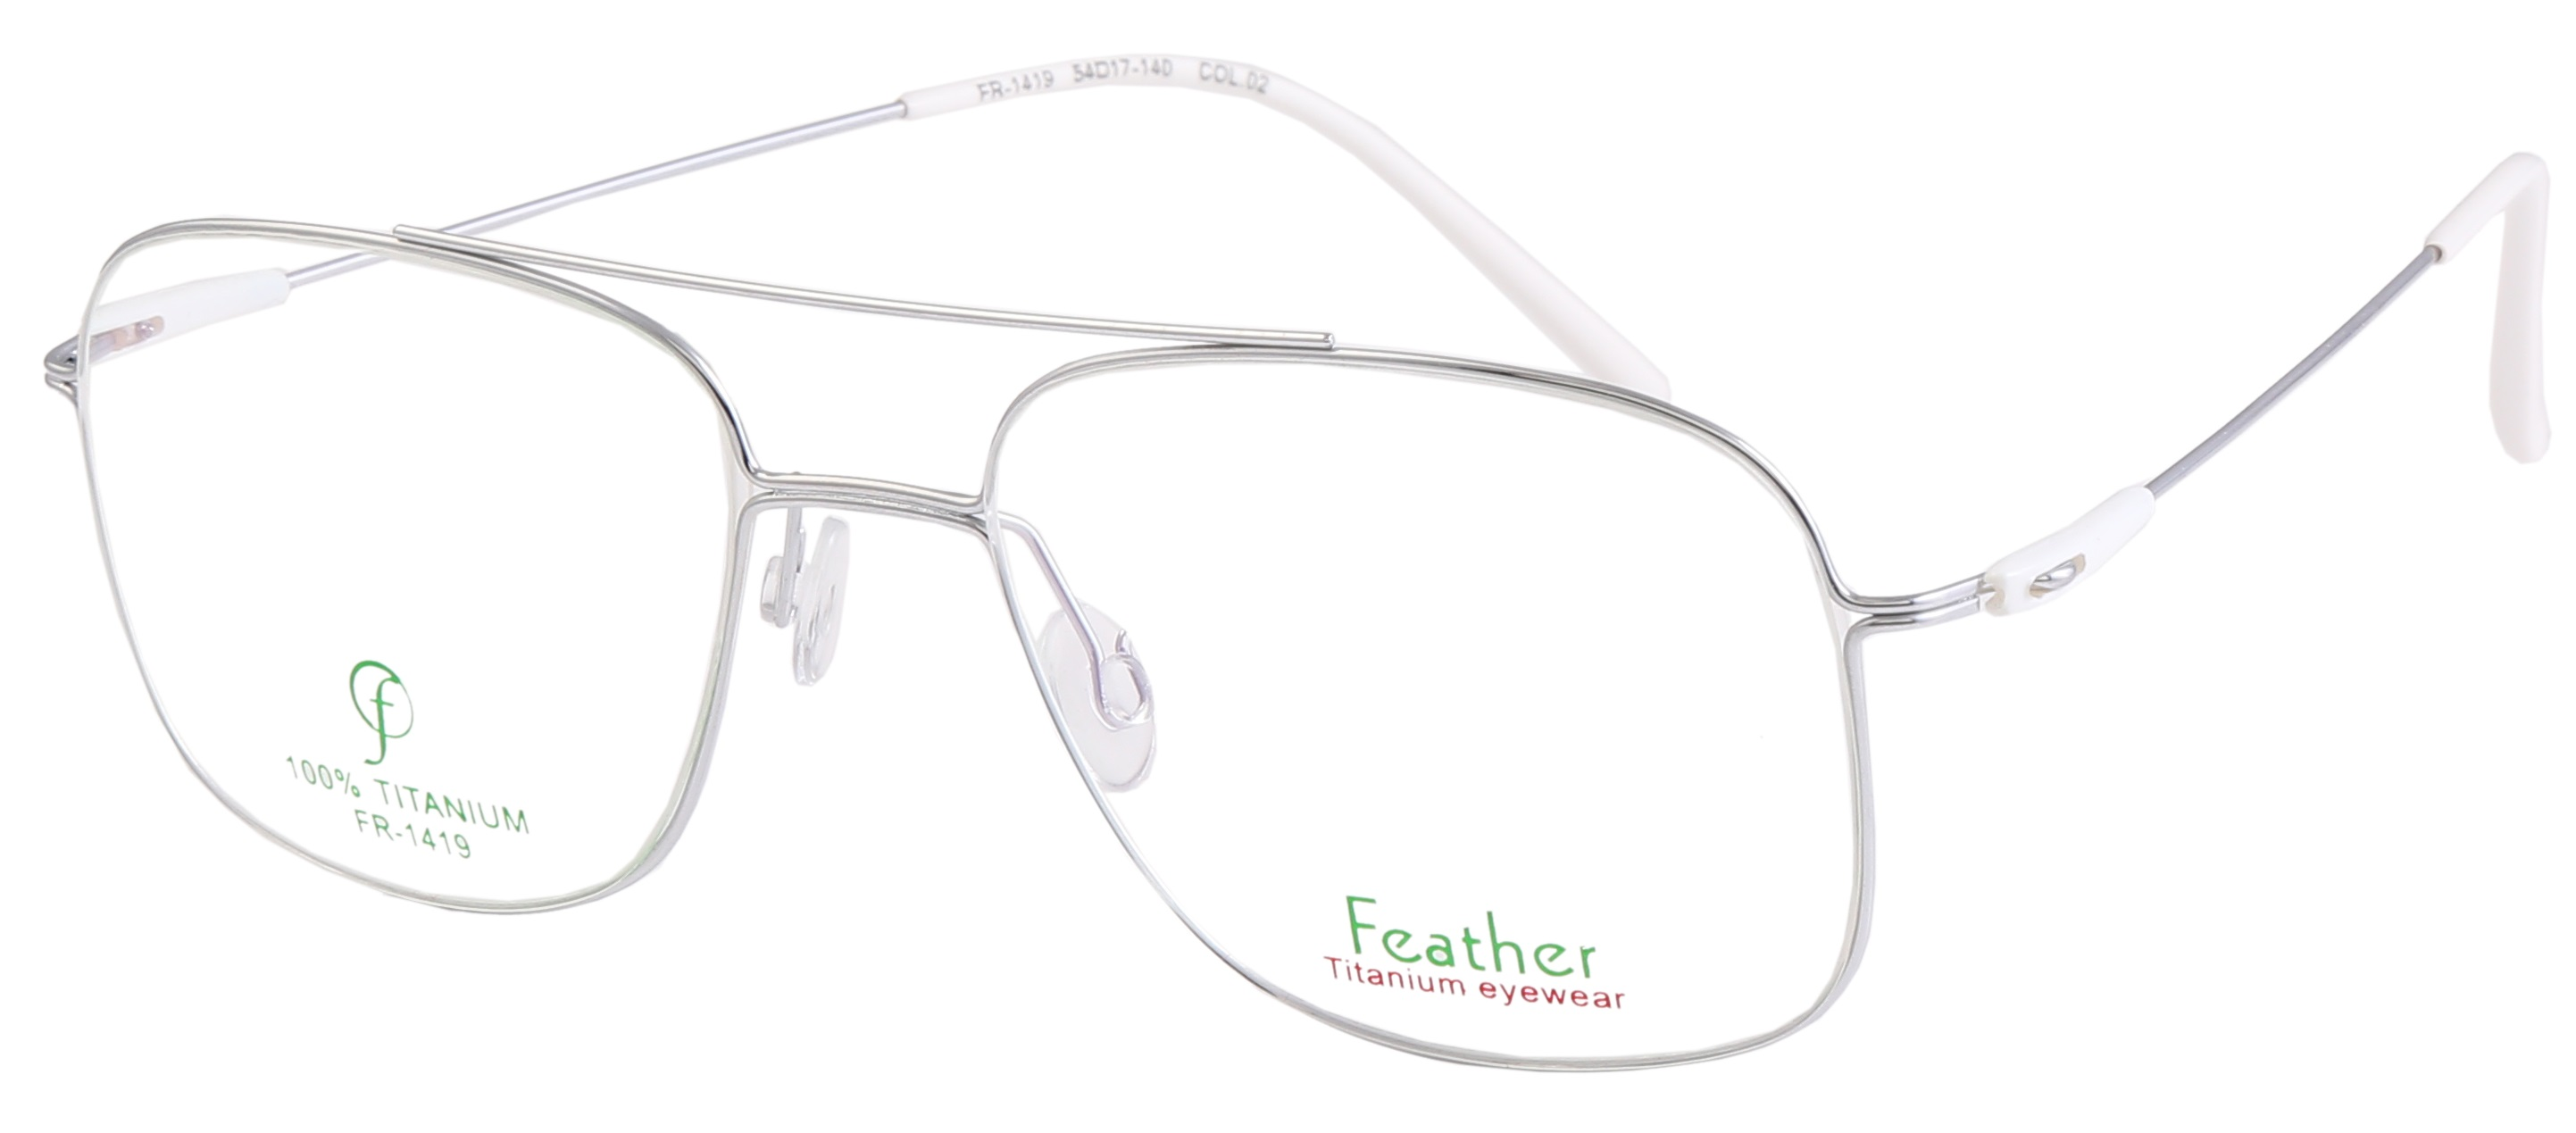 Feather Model No FR-1419